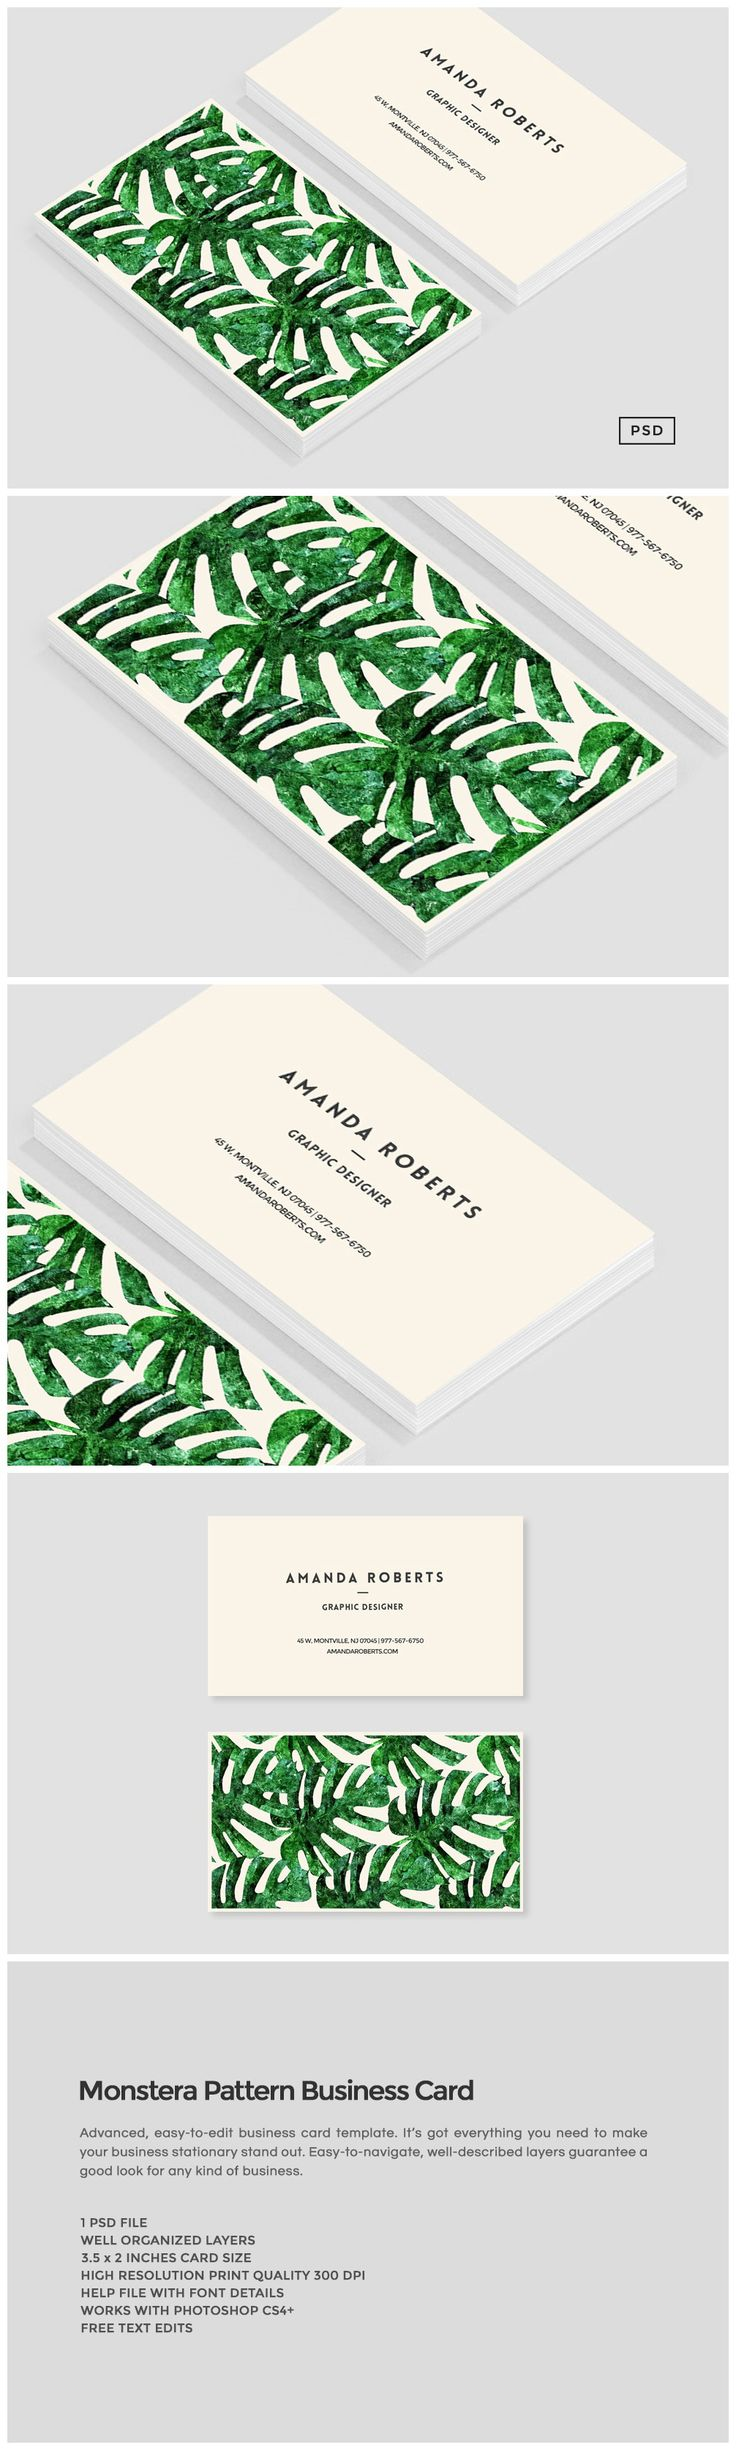 9 best business card ideas images on pinterest banners business monstera pattern business card introducing our latest monstera pattern business card template perfect for use in your next project or for your own brand magicingreecefo Gallery